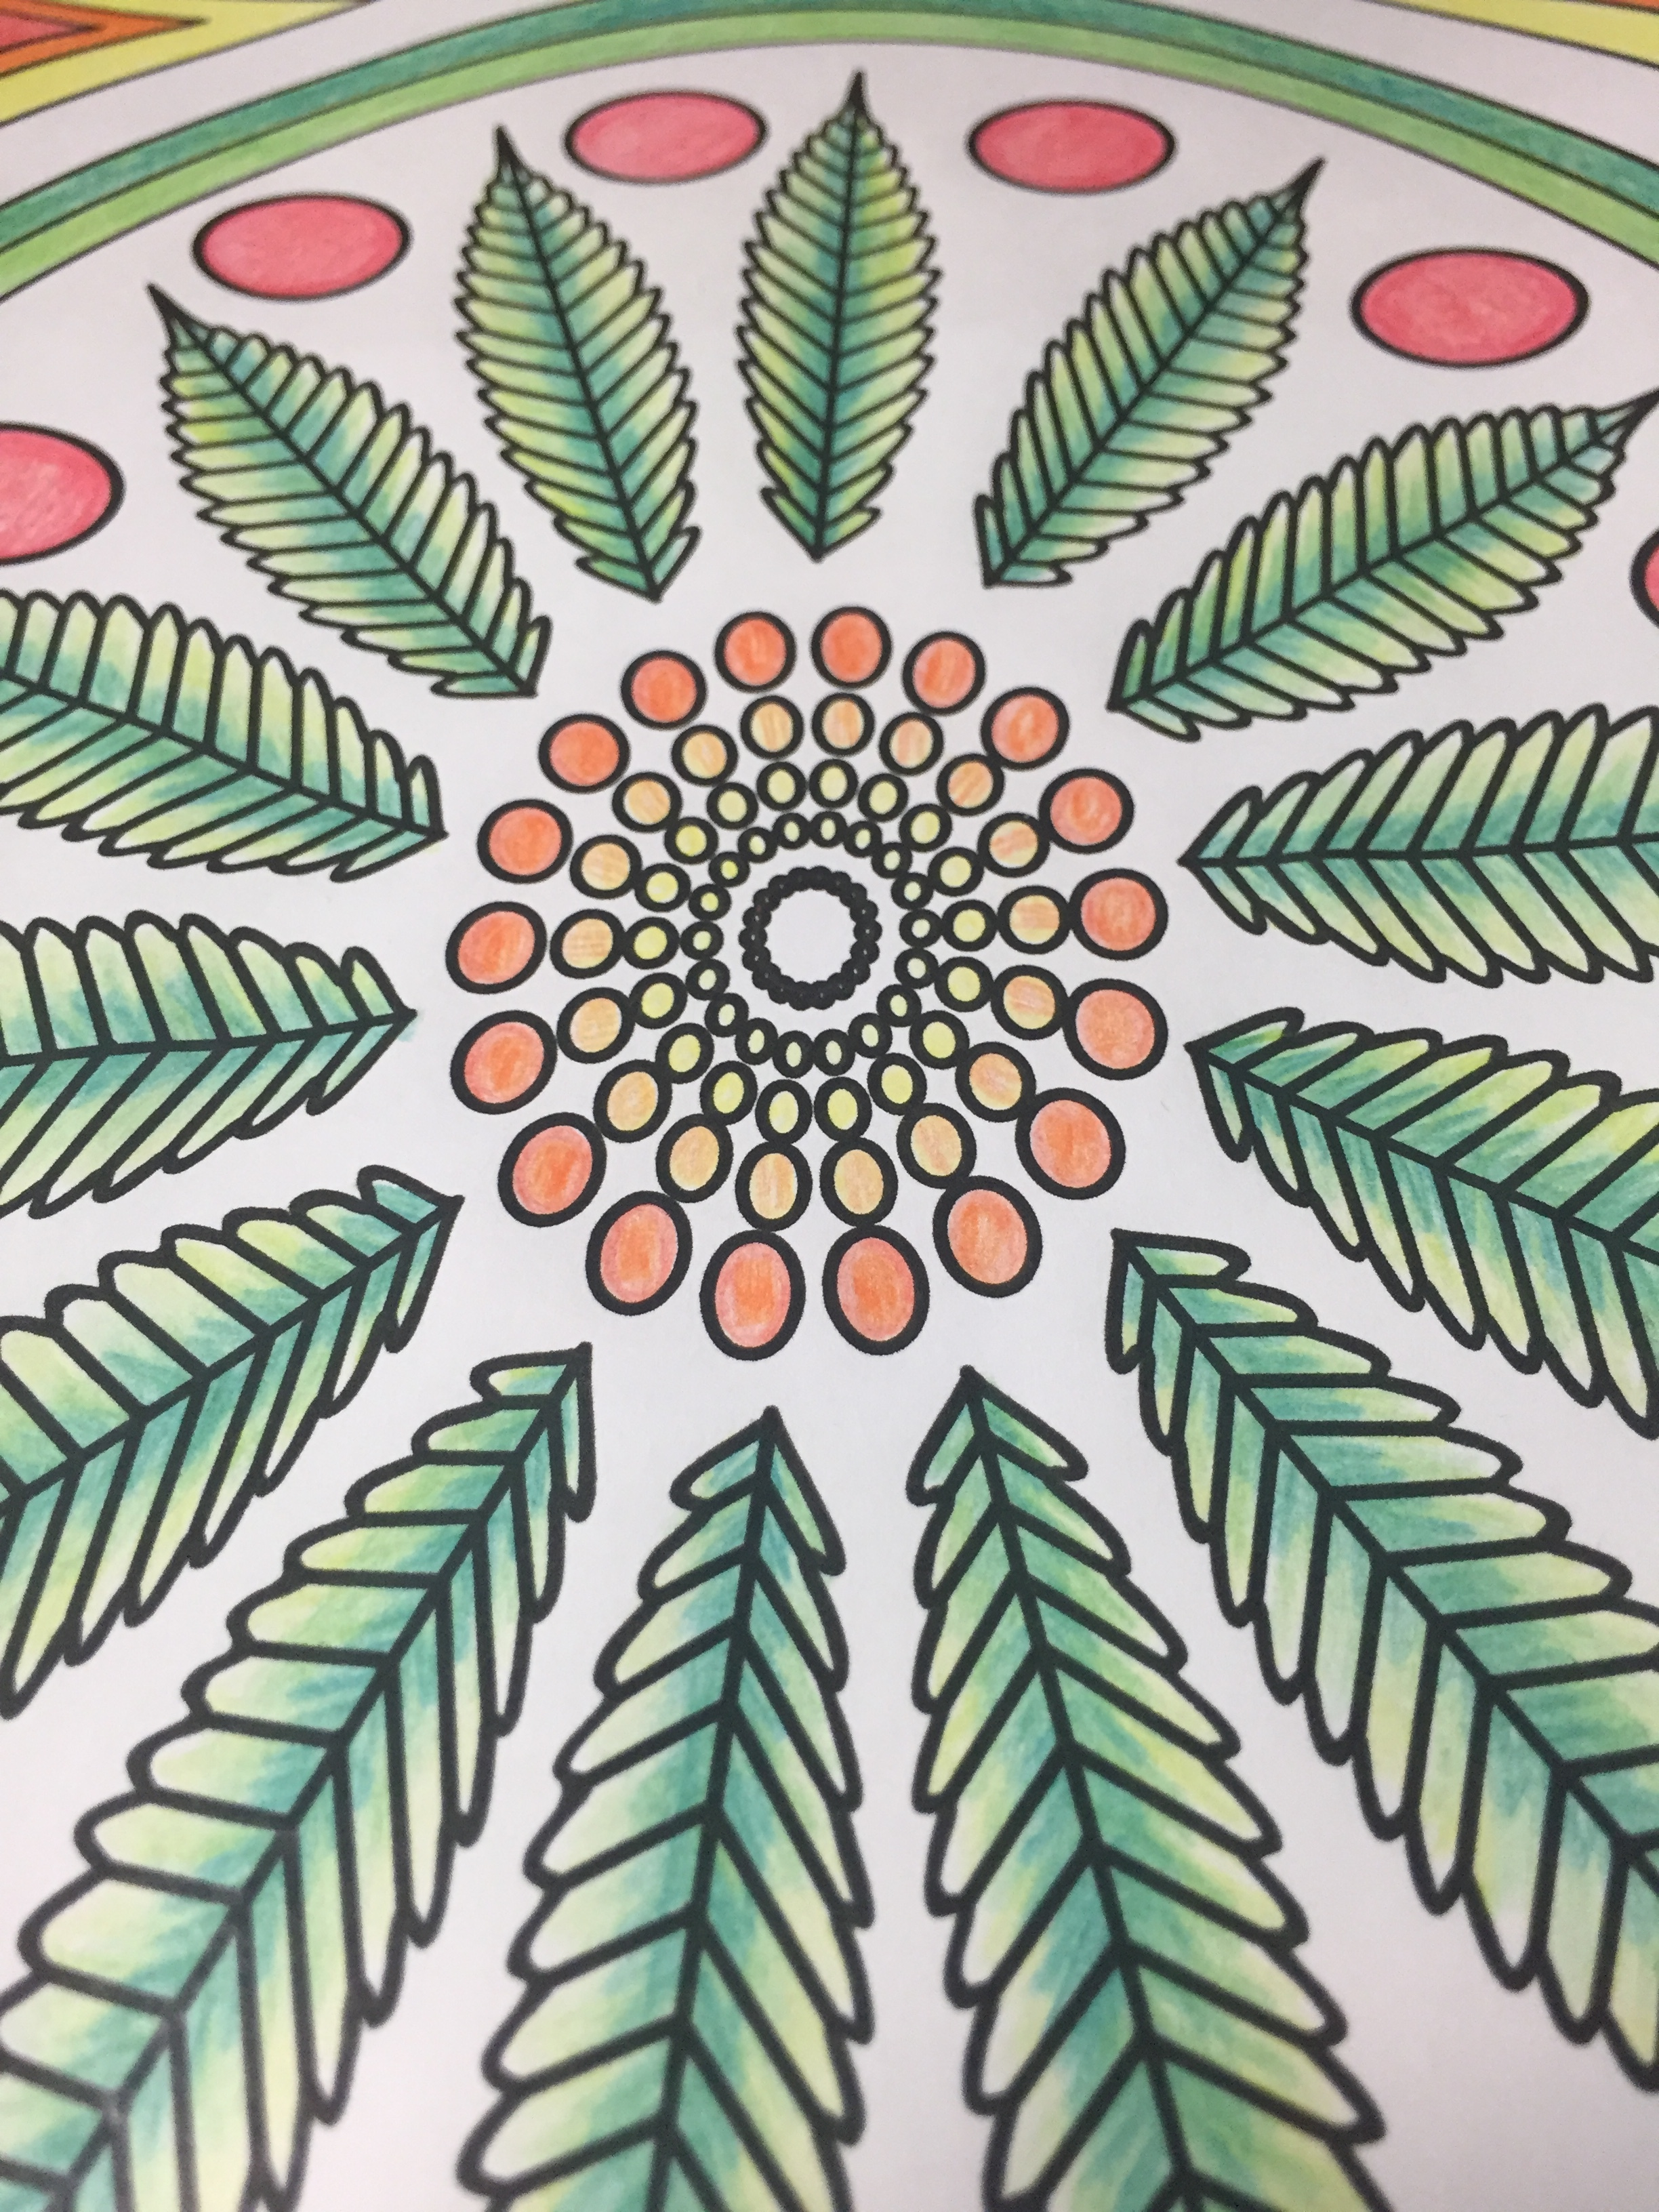 Stoner Coloring Page from Color Me Cannabis